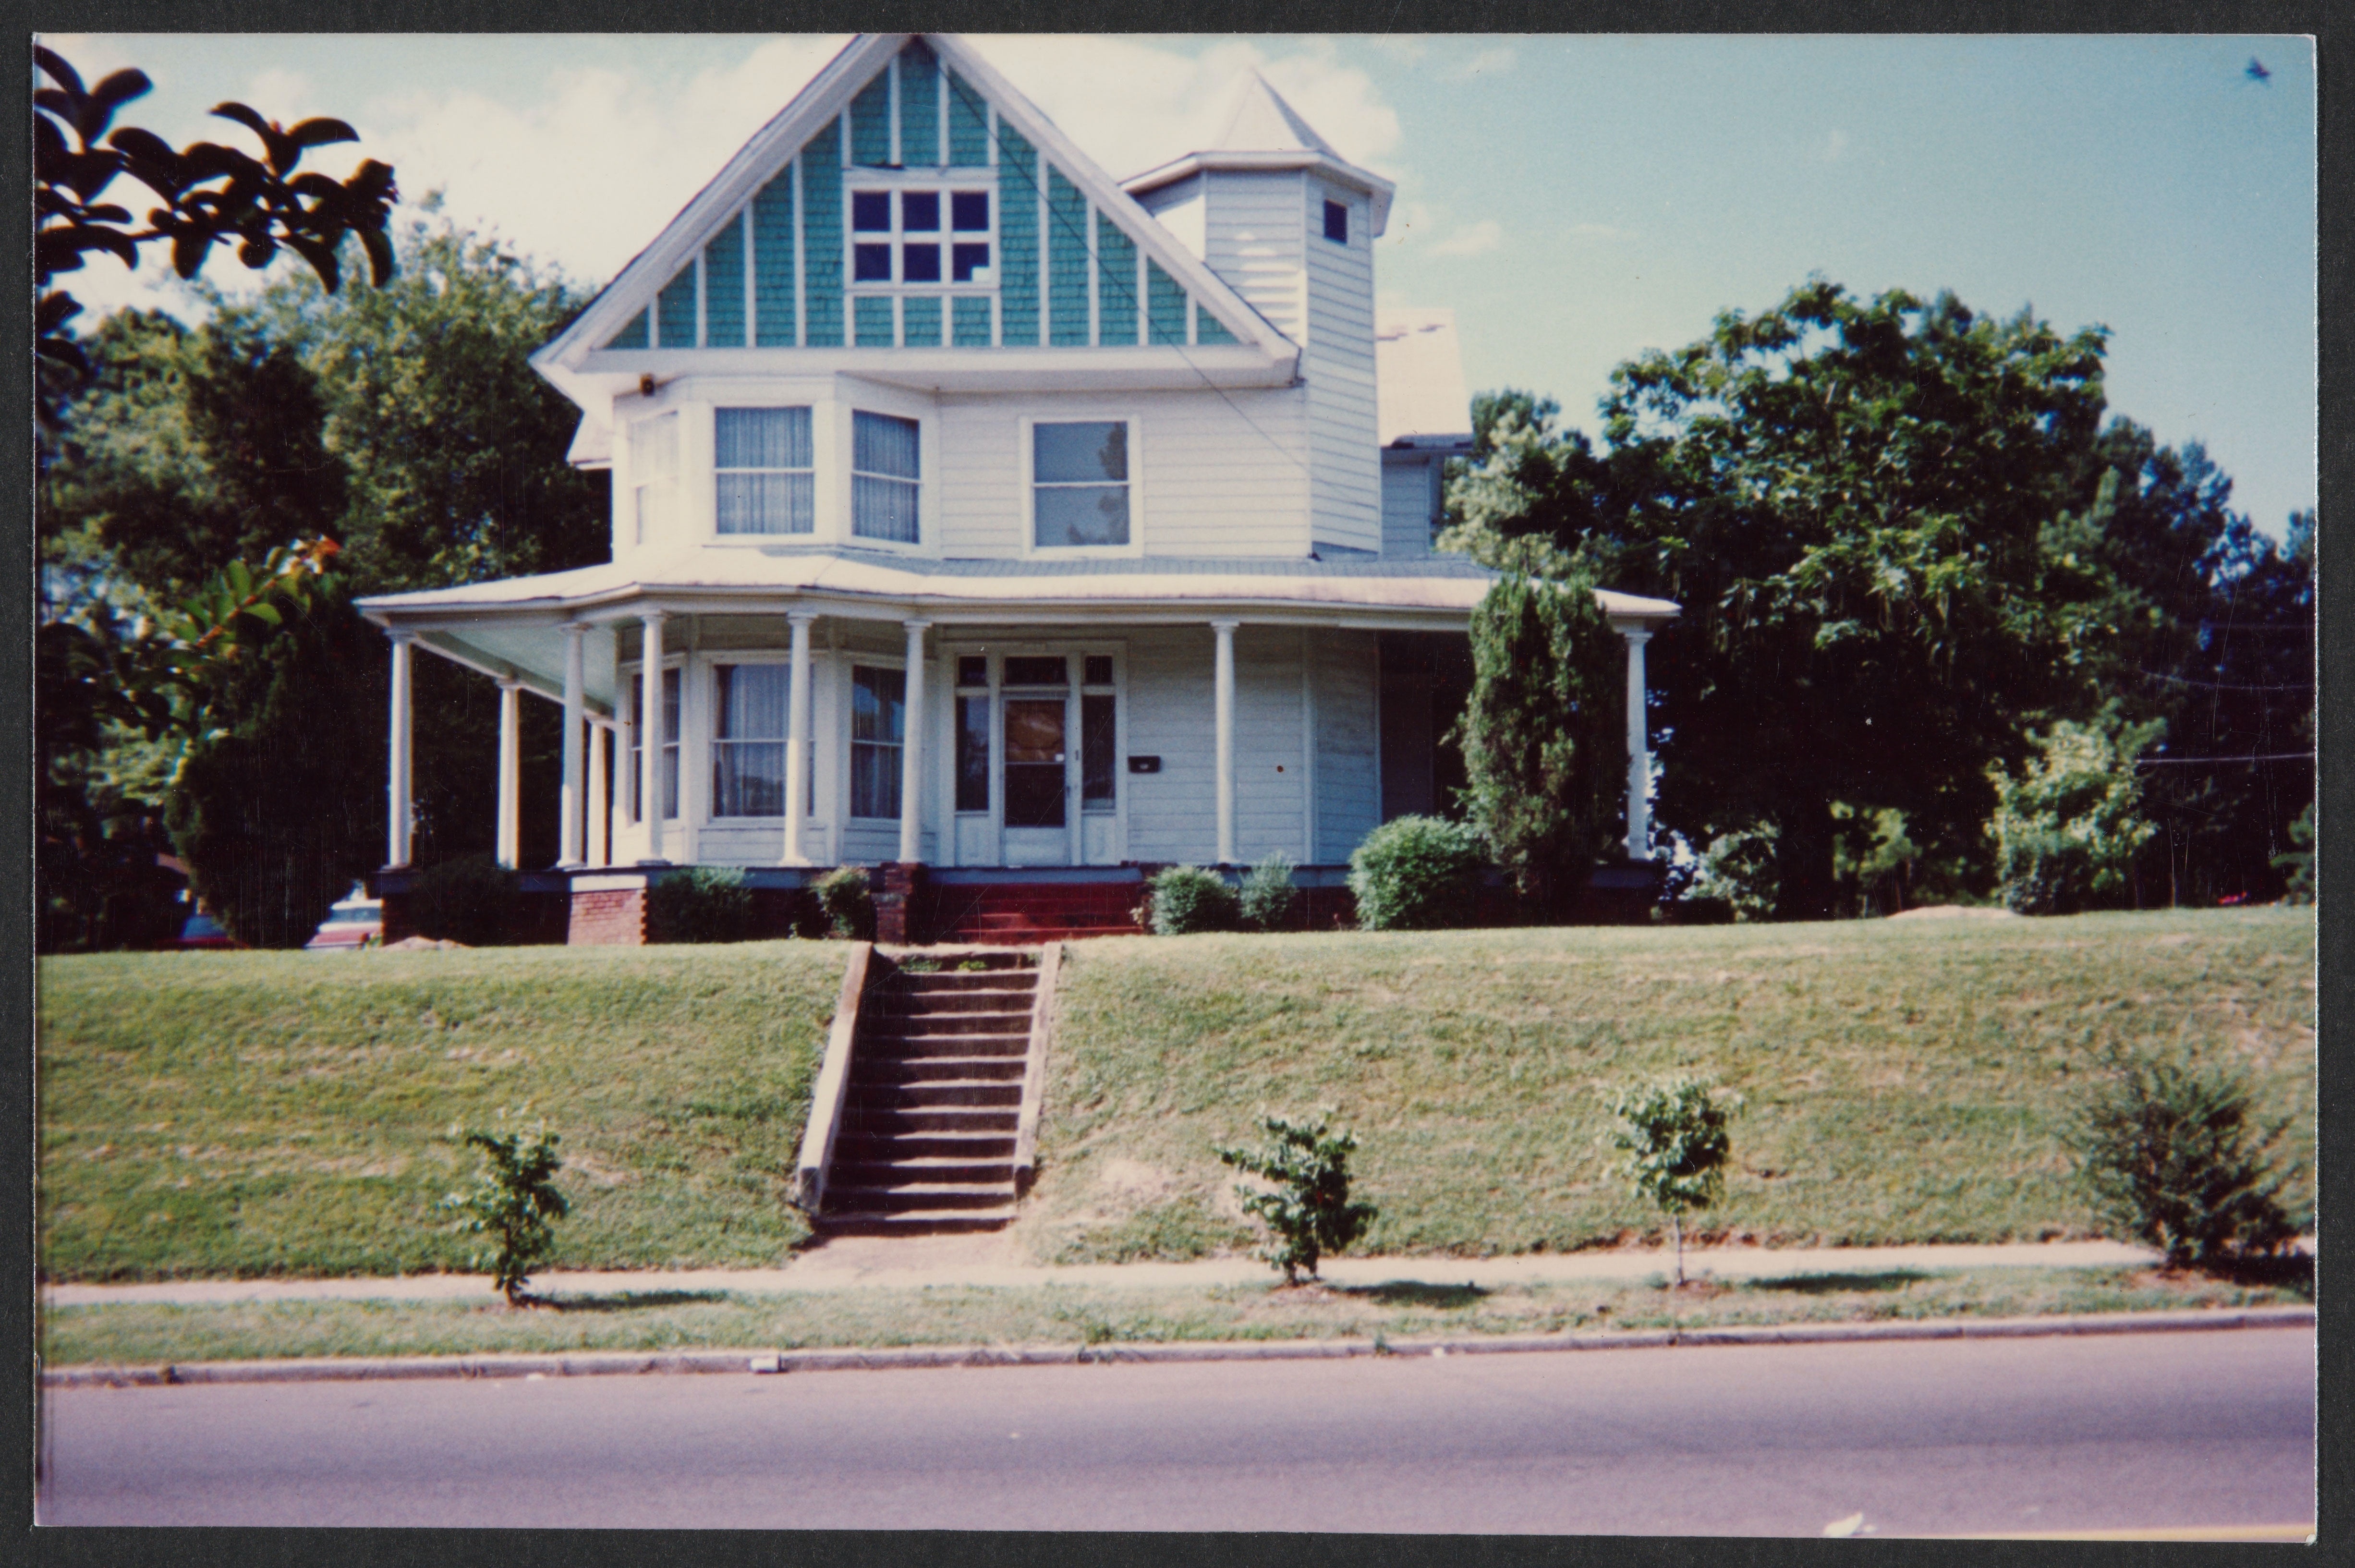 Front view of a blue family home.